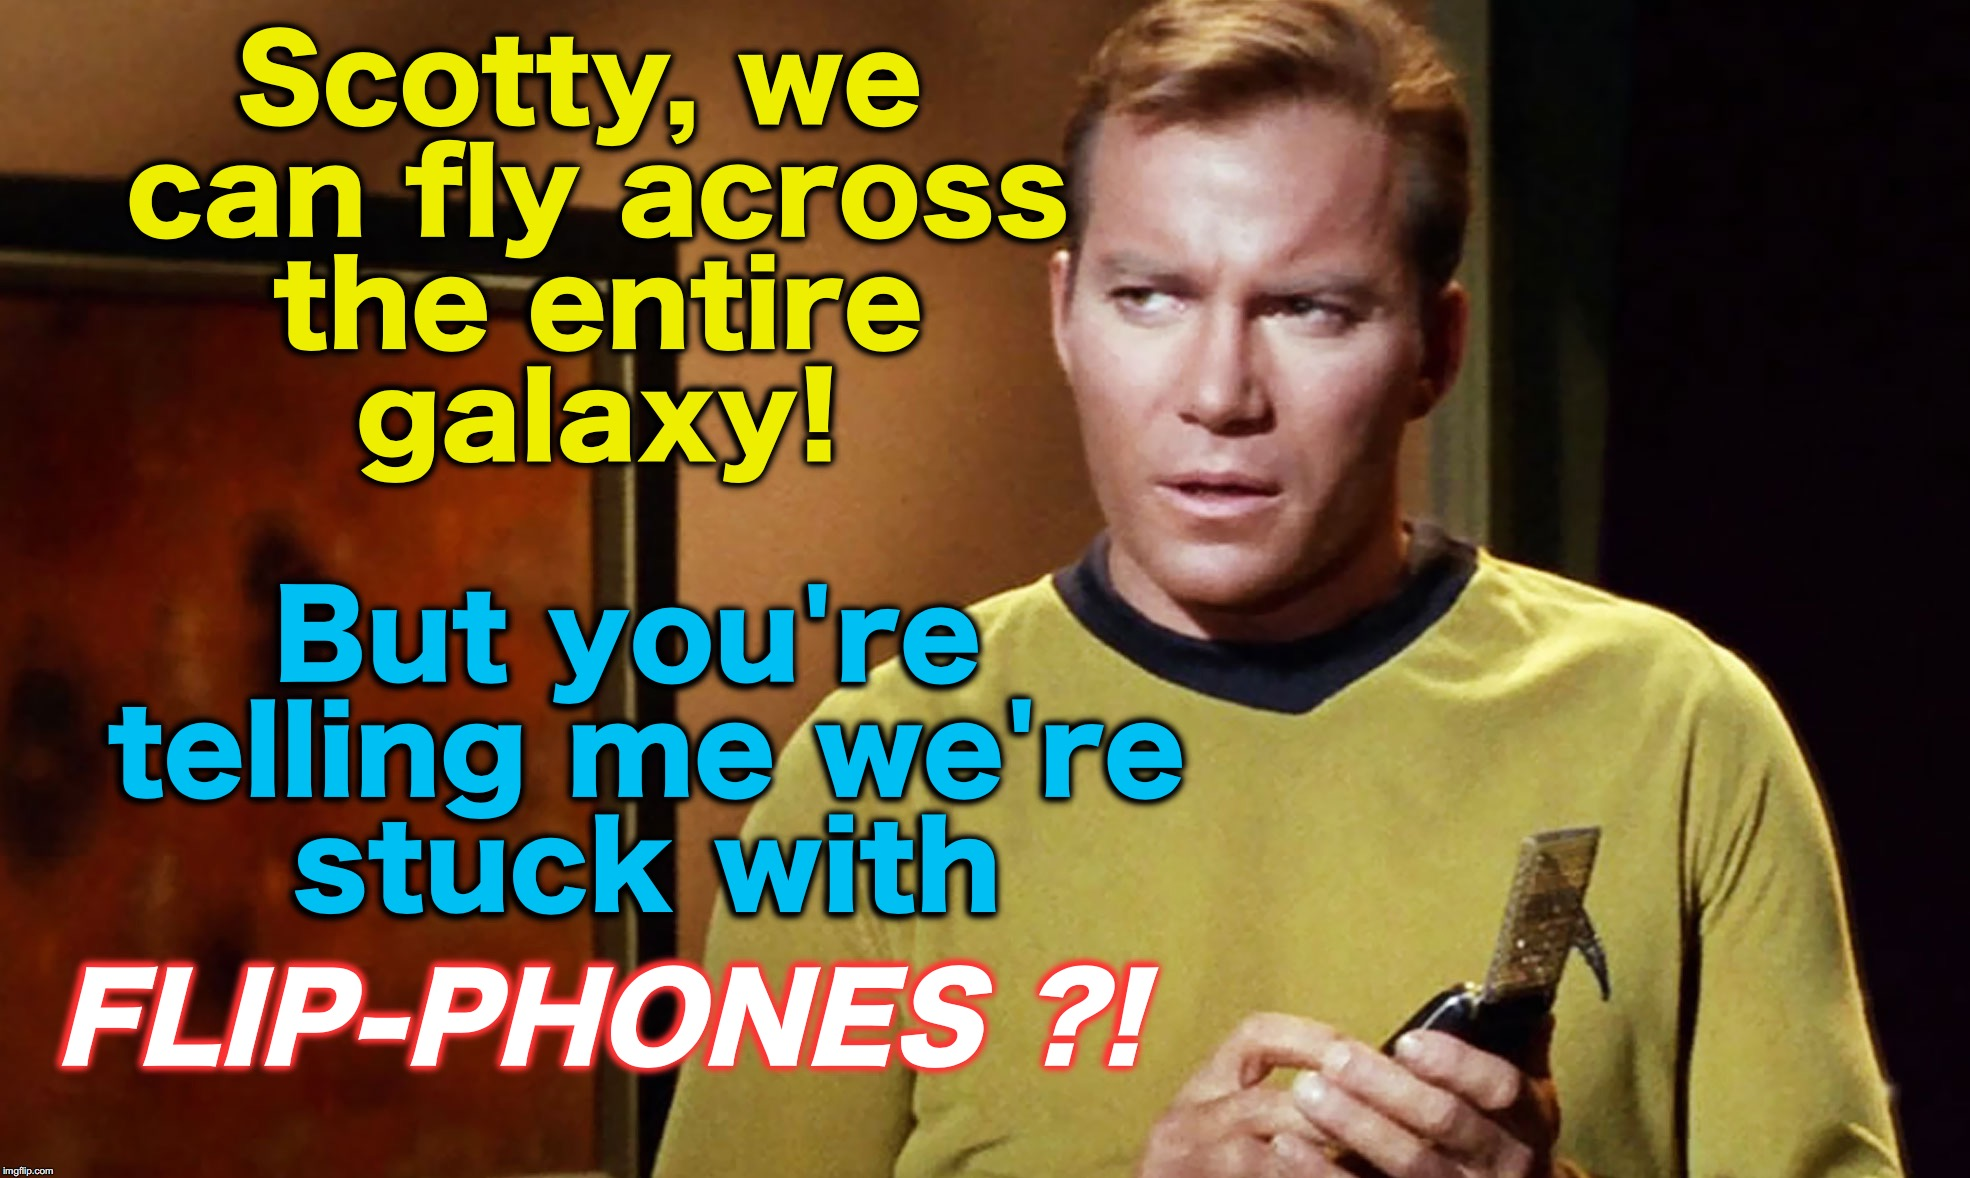 Scotty, we can fly across the entire galaxy! FLIP-PHONES ?! But you're telling me we're stuck with | image tagged in star trek | made w/ Imgflip meme maker